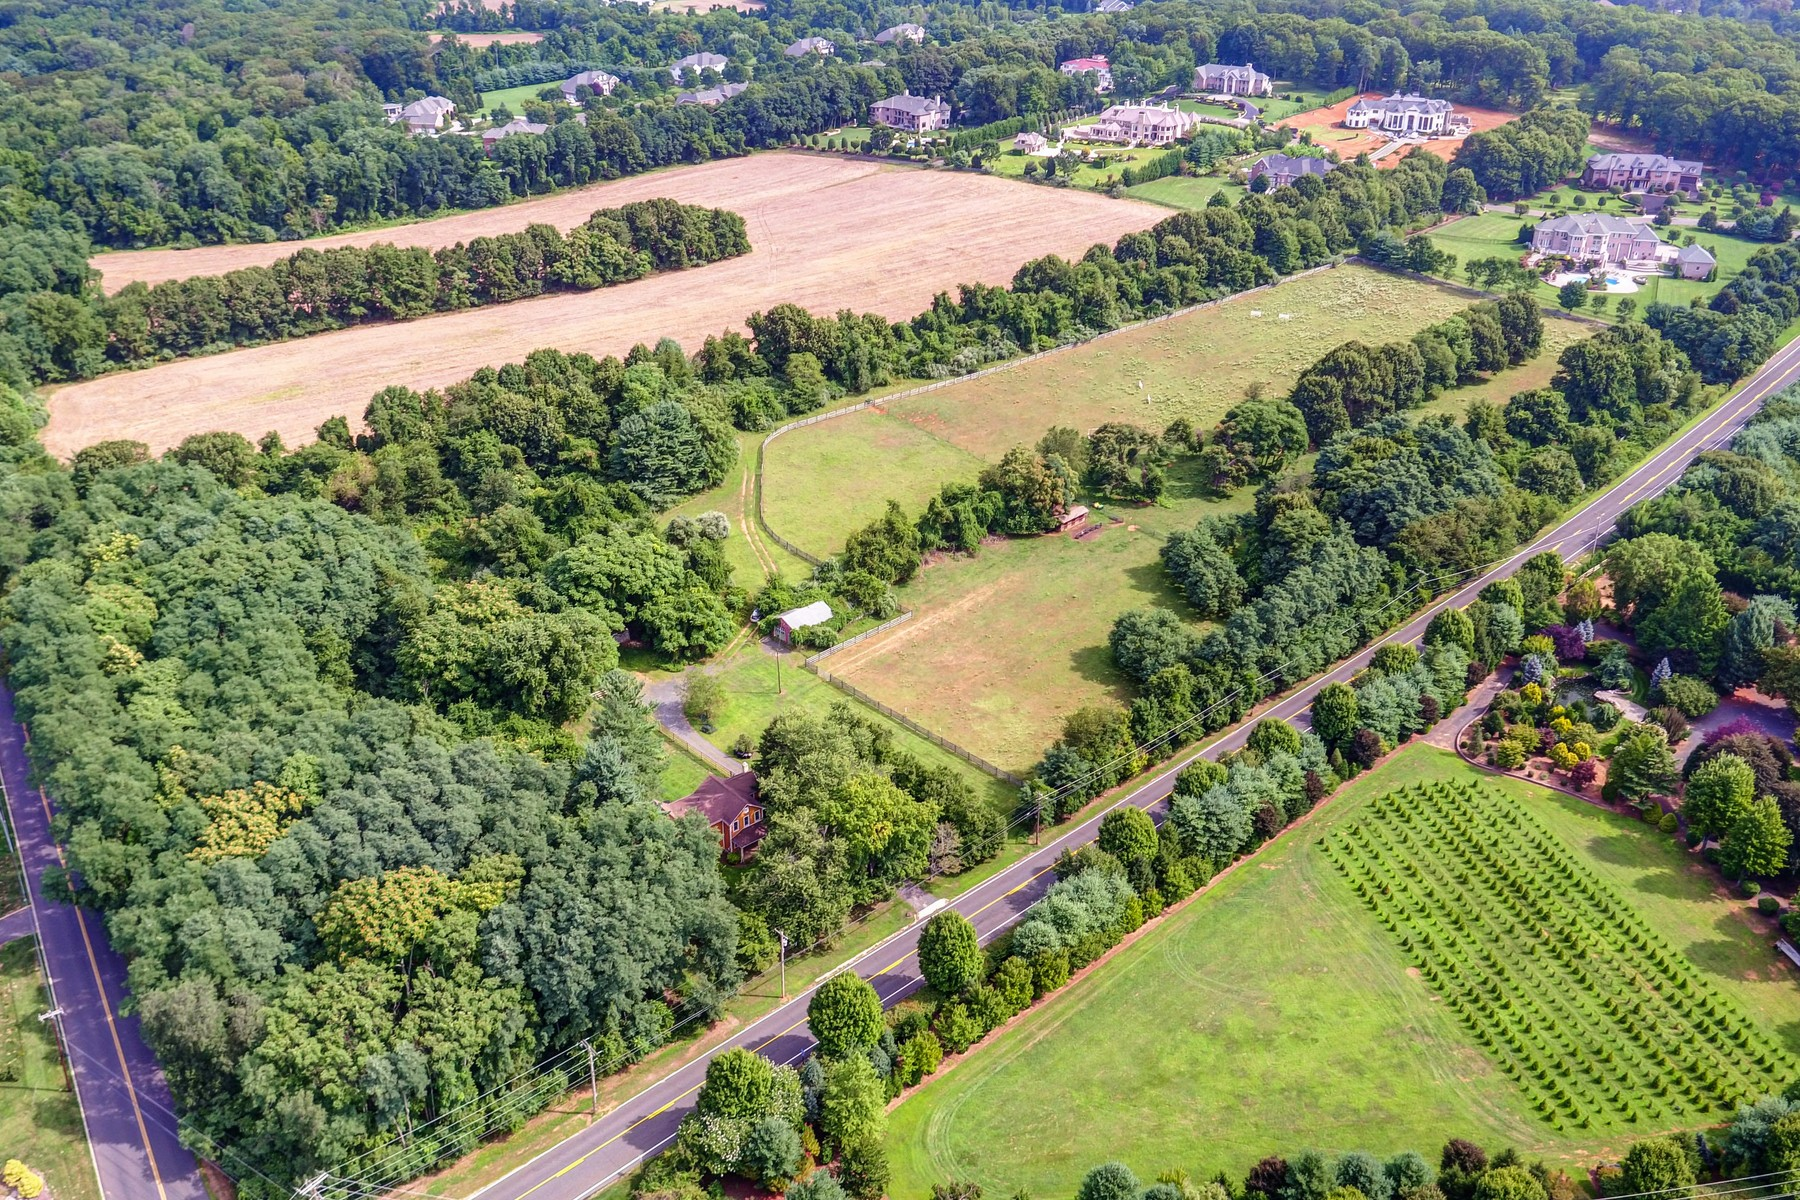 أراضي للـ Sale في 40 Acre Farm 151 Dutch Lane Road, Colts Neck, New Jersey 07722 United States